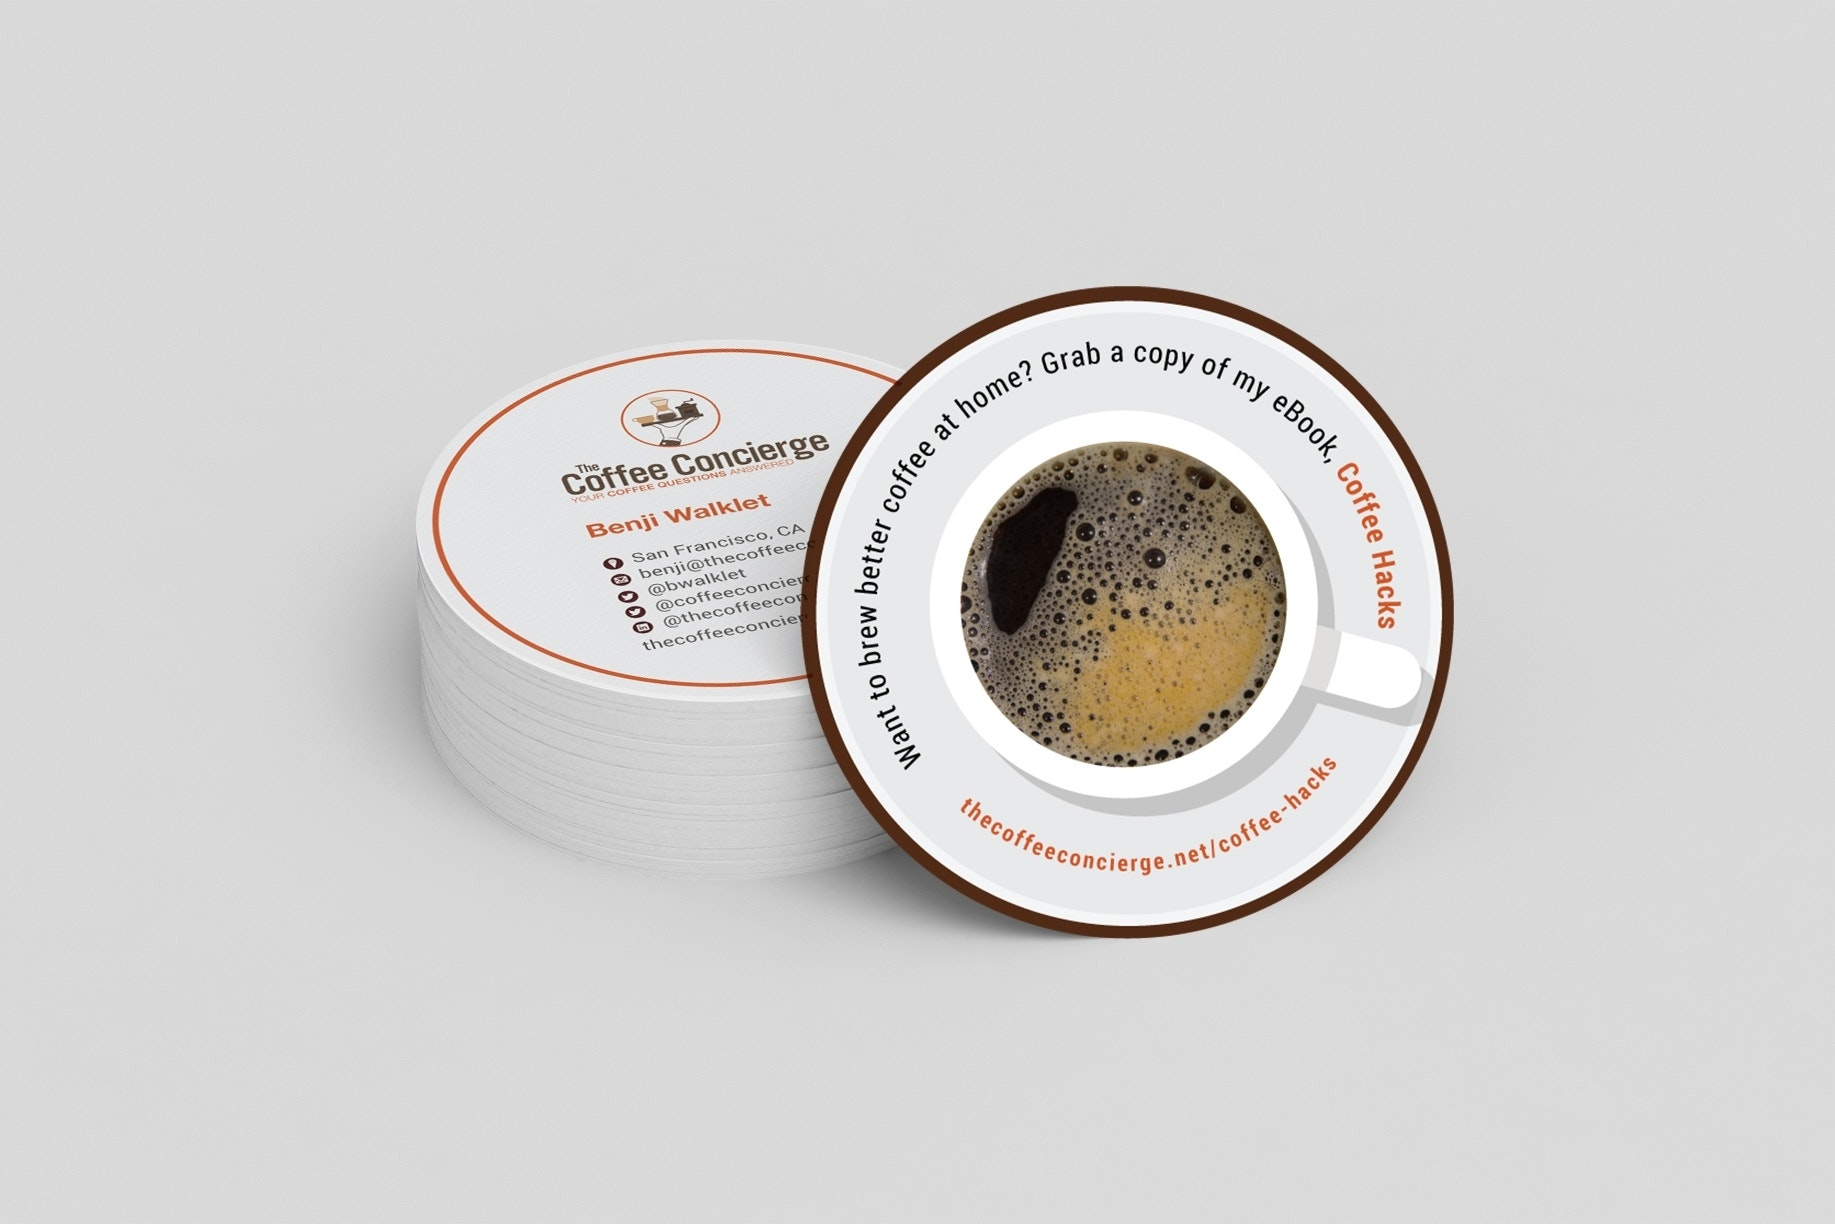 Coaster business cards